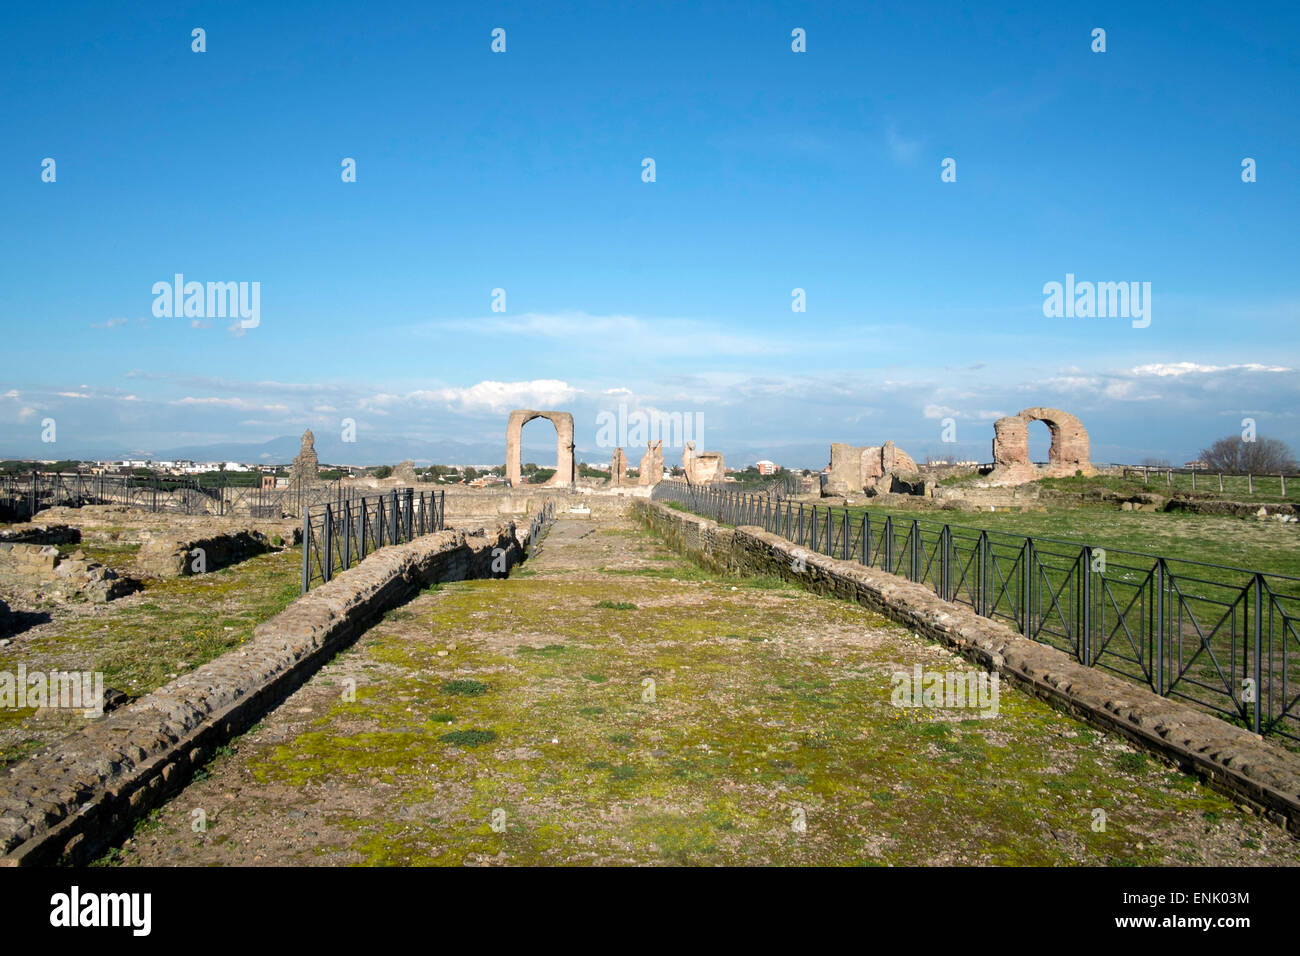 The main view of the Quintili's villa built in the 2nd century BC on the Appian Way, Rome, Lazio, Italy, Europe - Stock Image